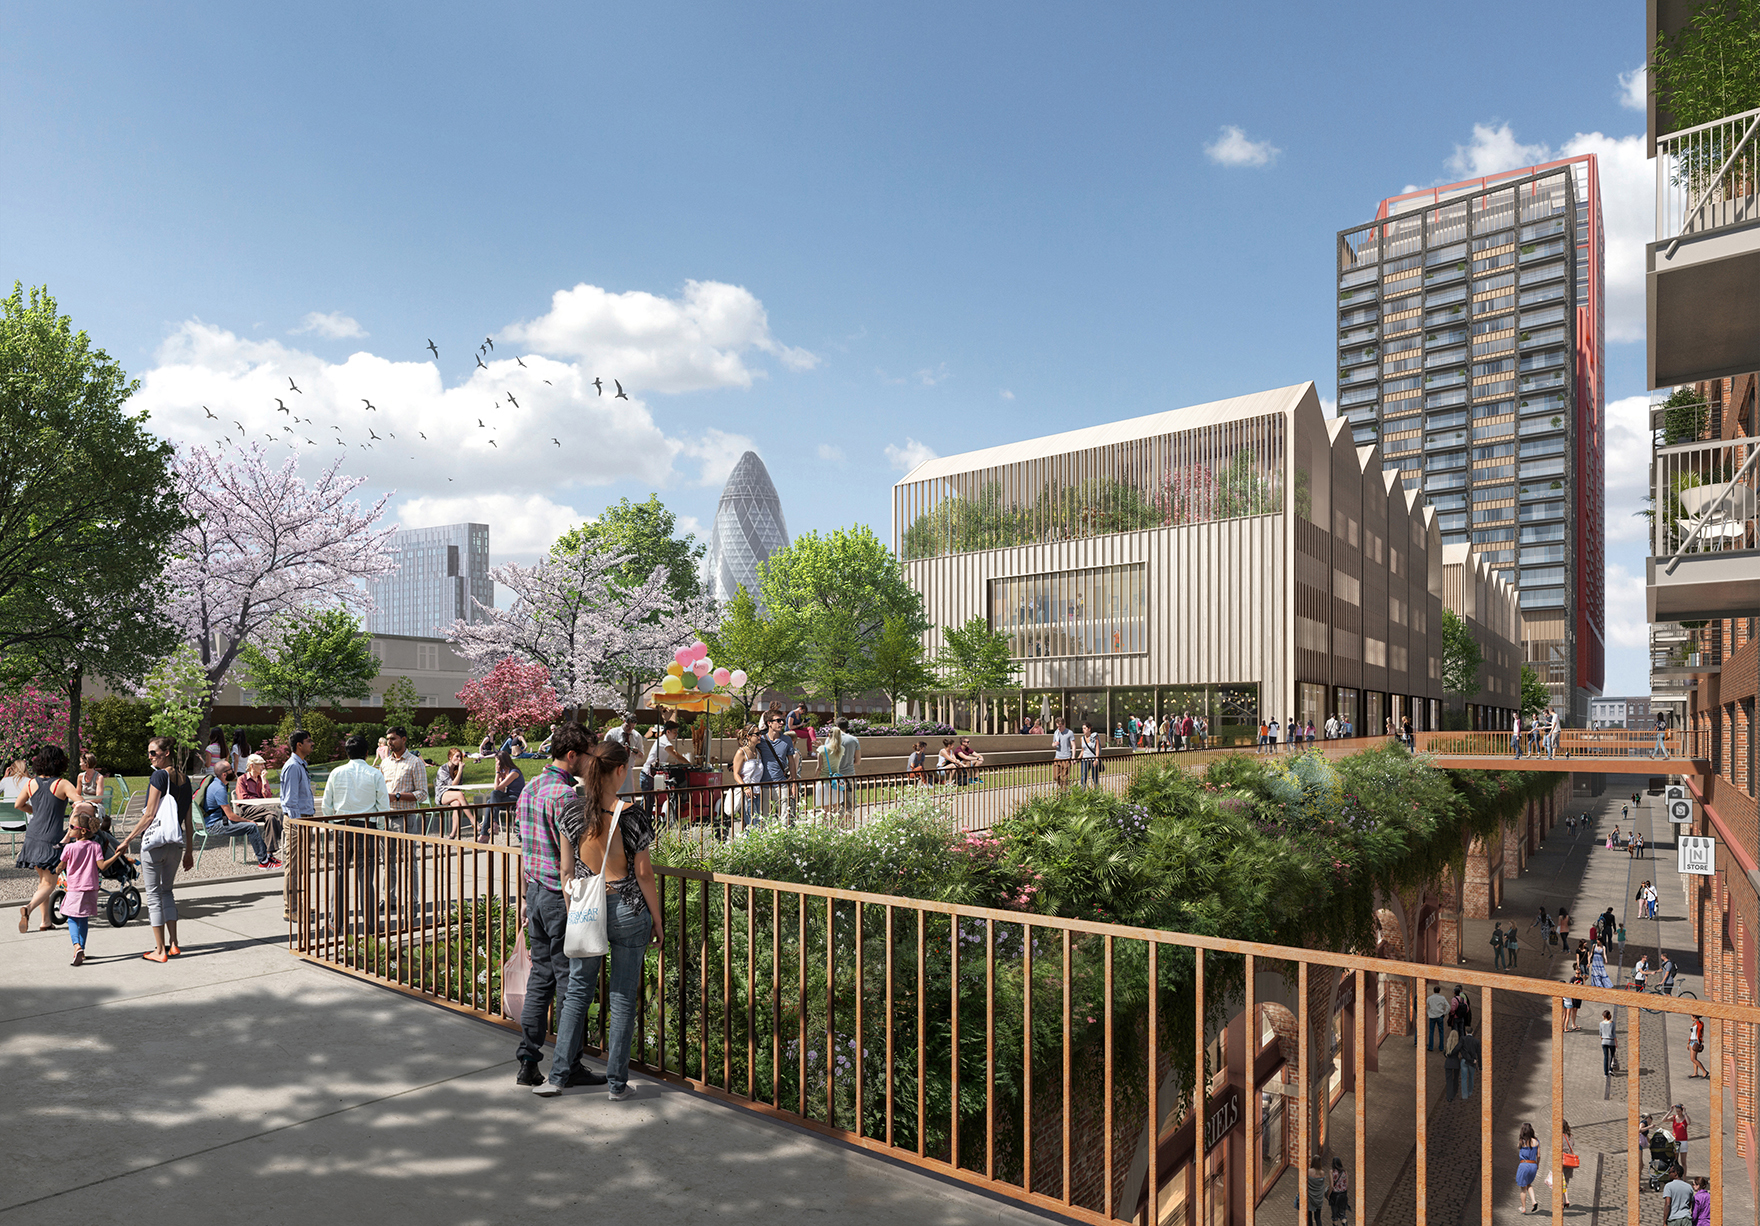 The Goodsyard Mixed Use Masterplan Faulknerbrowns Architects Public Park Residential Hotel Workplace Lh